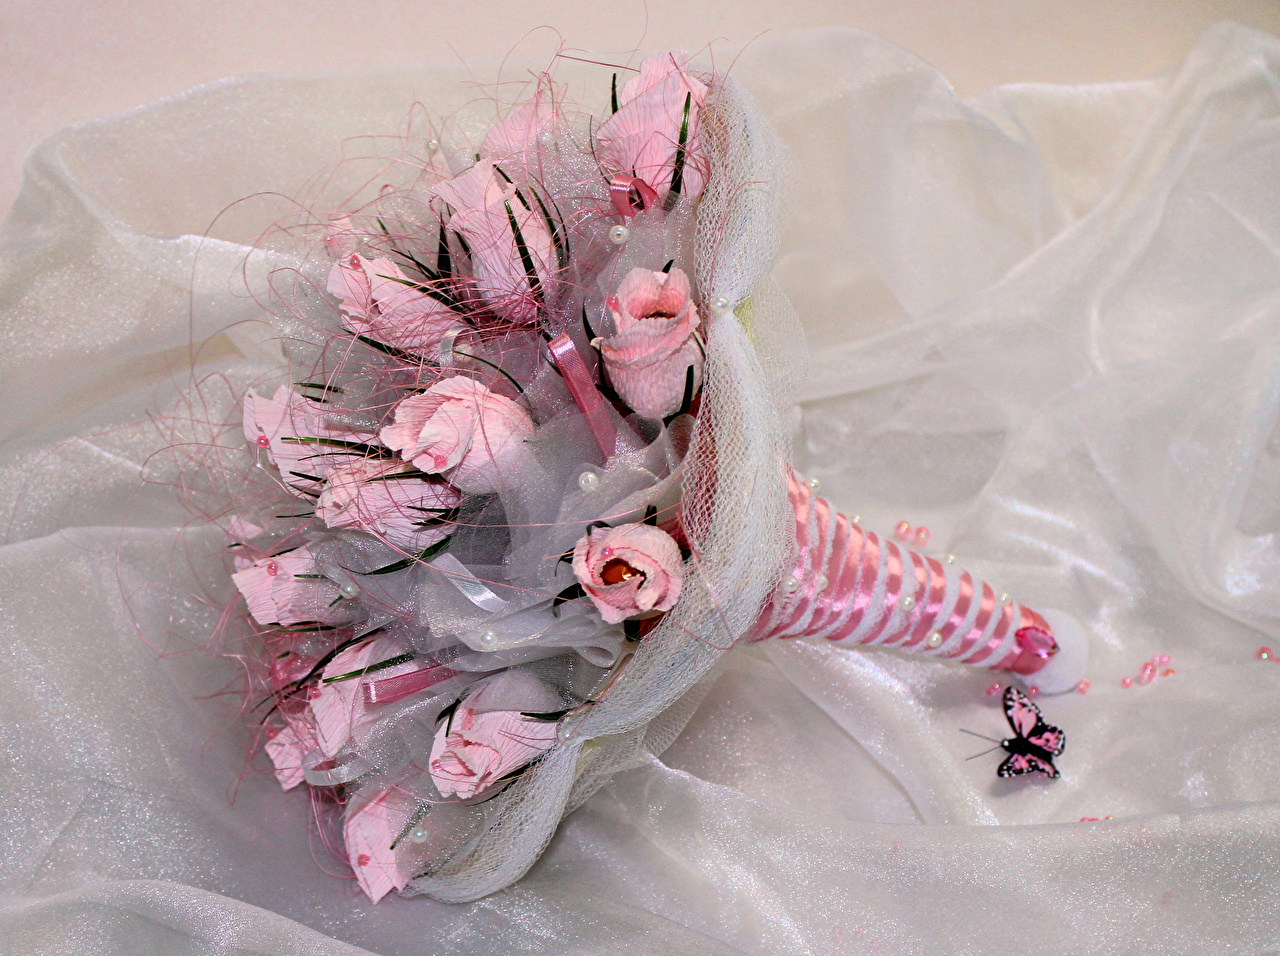 Wallpapers Butterflies Bouquets Roses Pink color Flowers